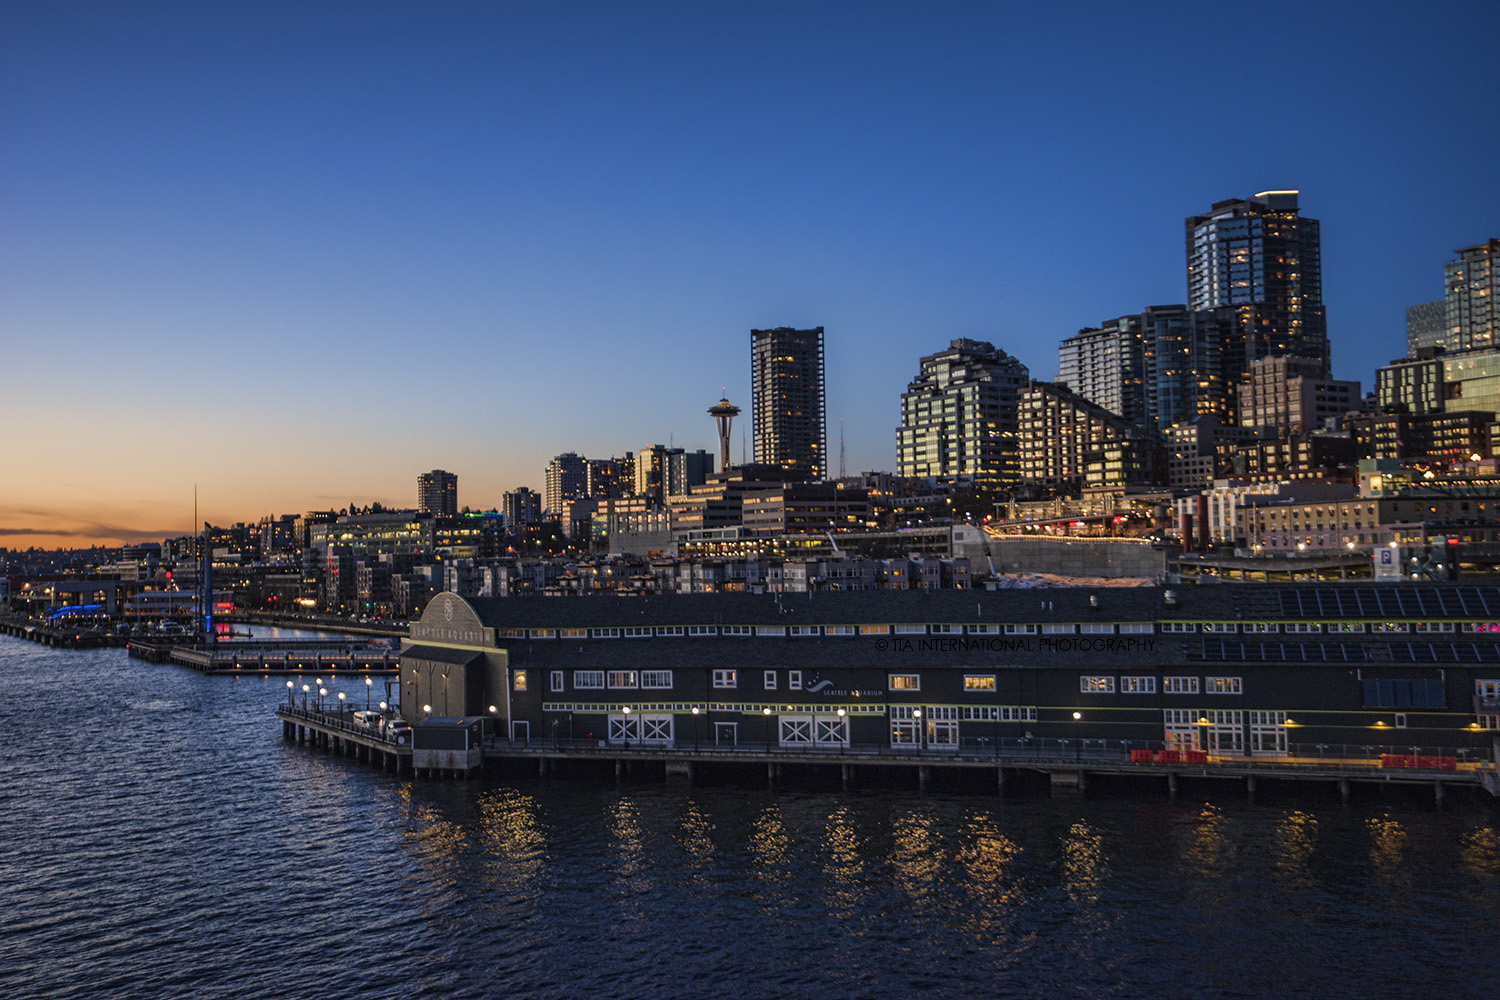 Seattle Waterfront featuring the Seattle Aquarium (foreground) and Space Needle (center) at sunset.